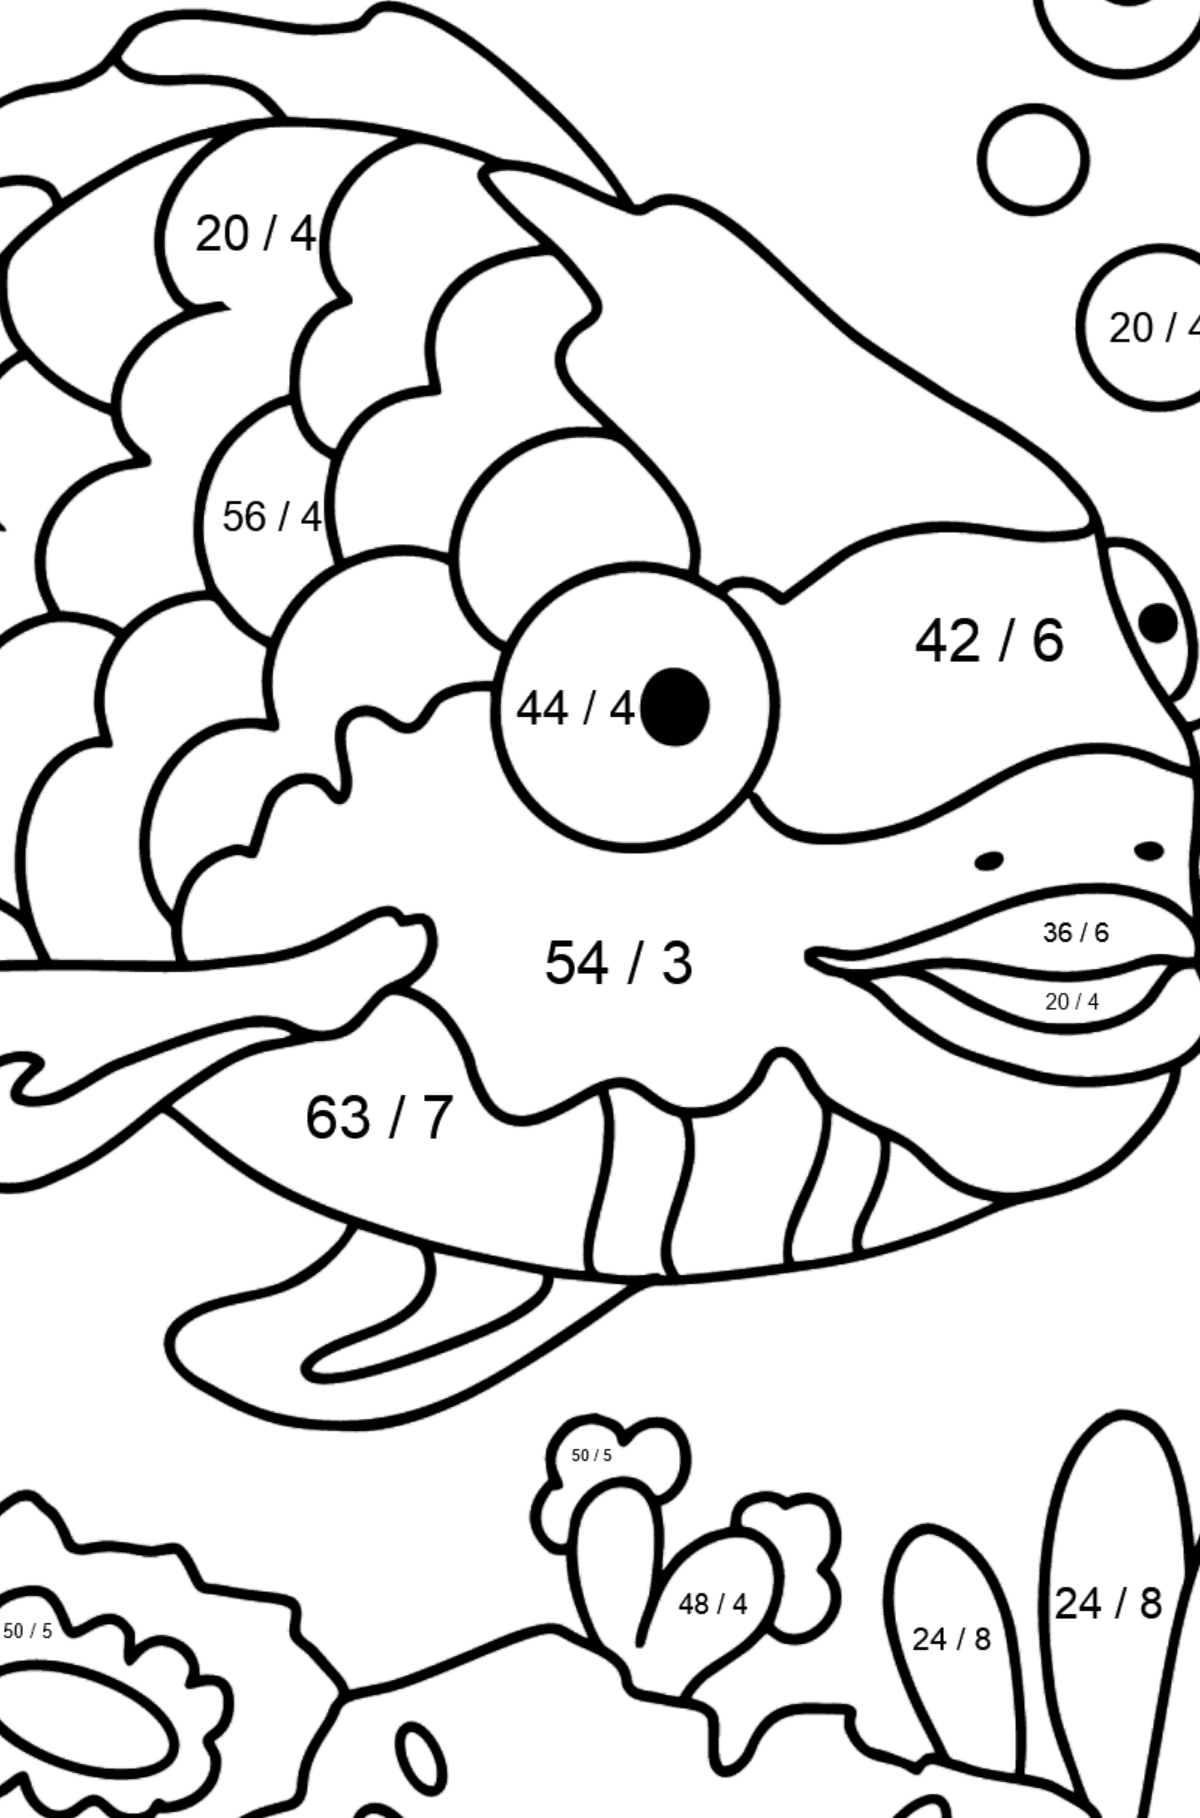 Coloring Page - A Fish with Beautiful Scales - Math Coloring - Division for Kids